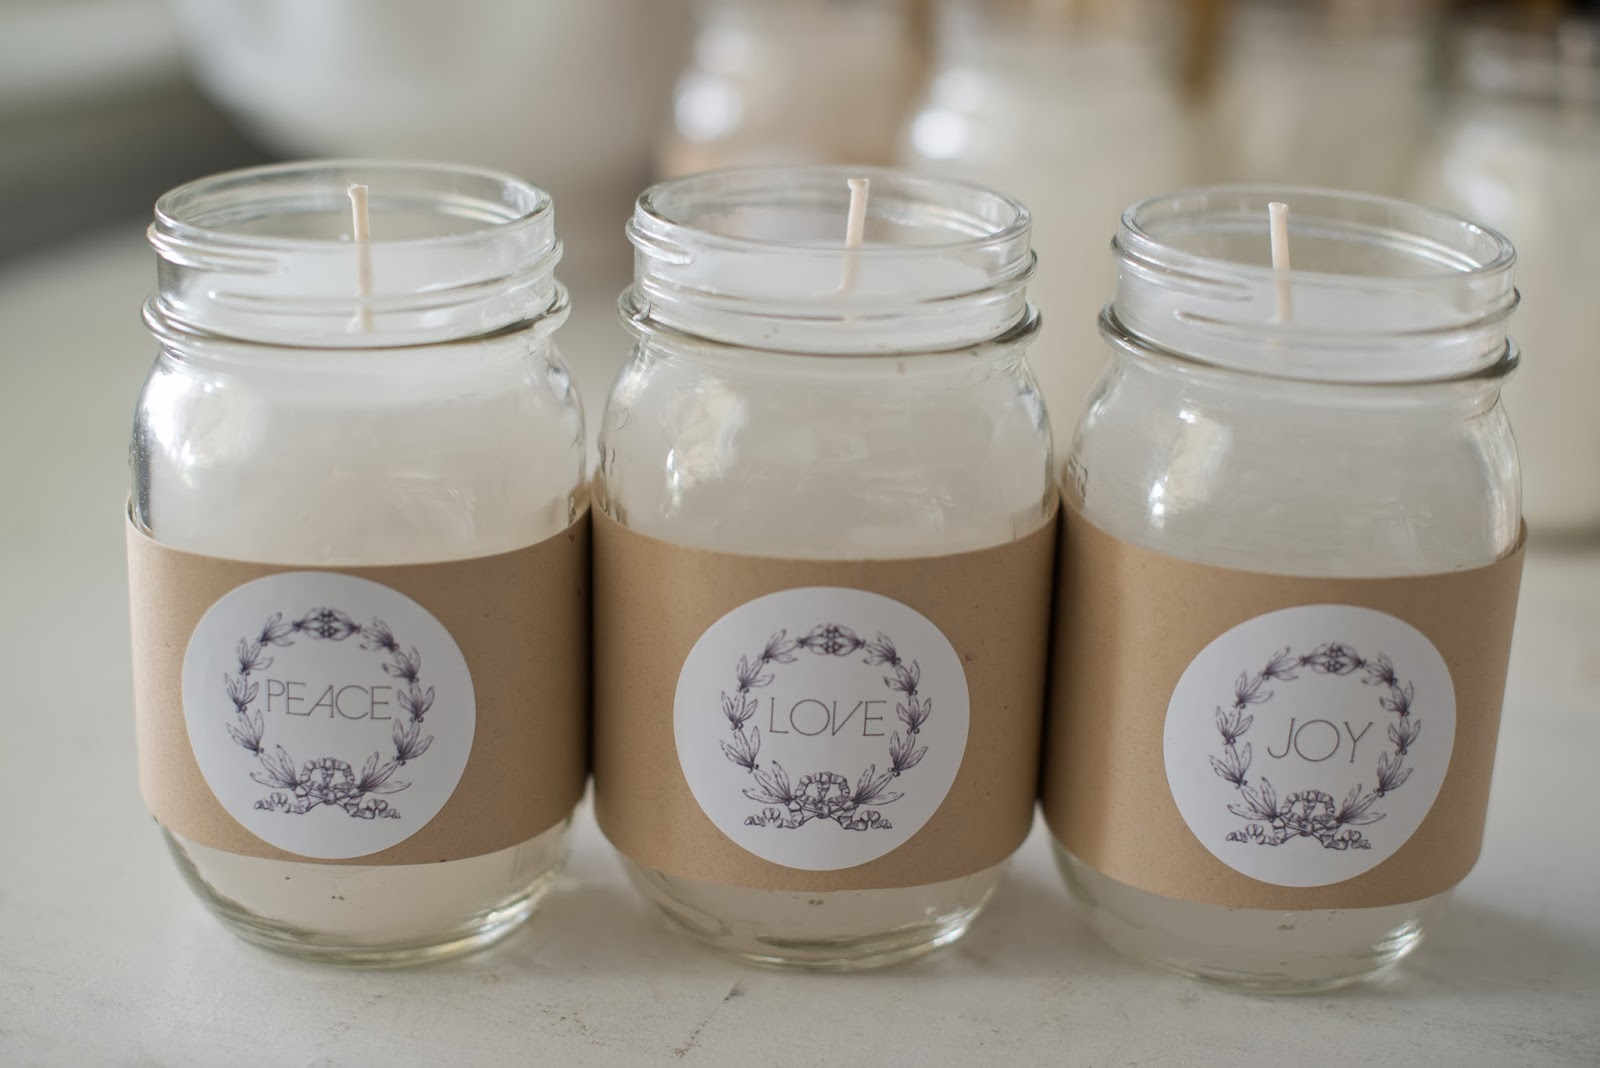 Domestic Fashionista Diy Canning Jar Candles Tutorial